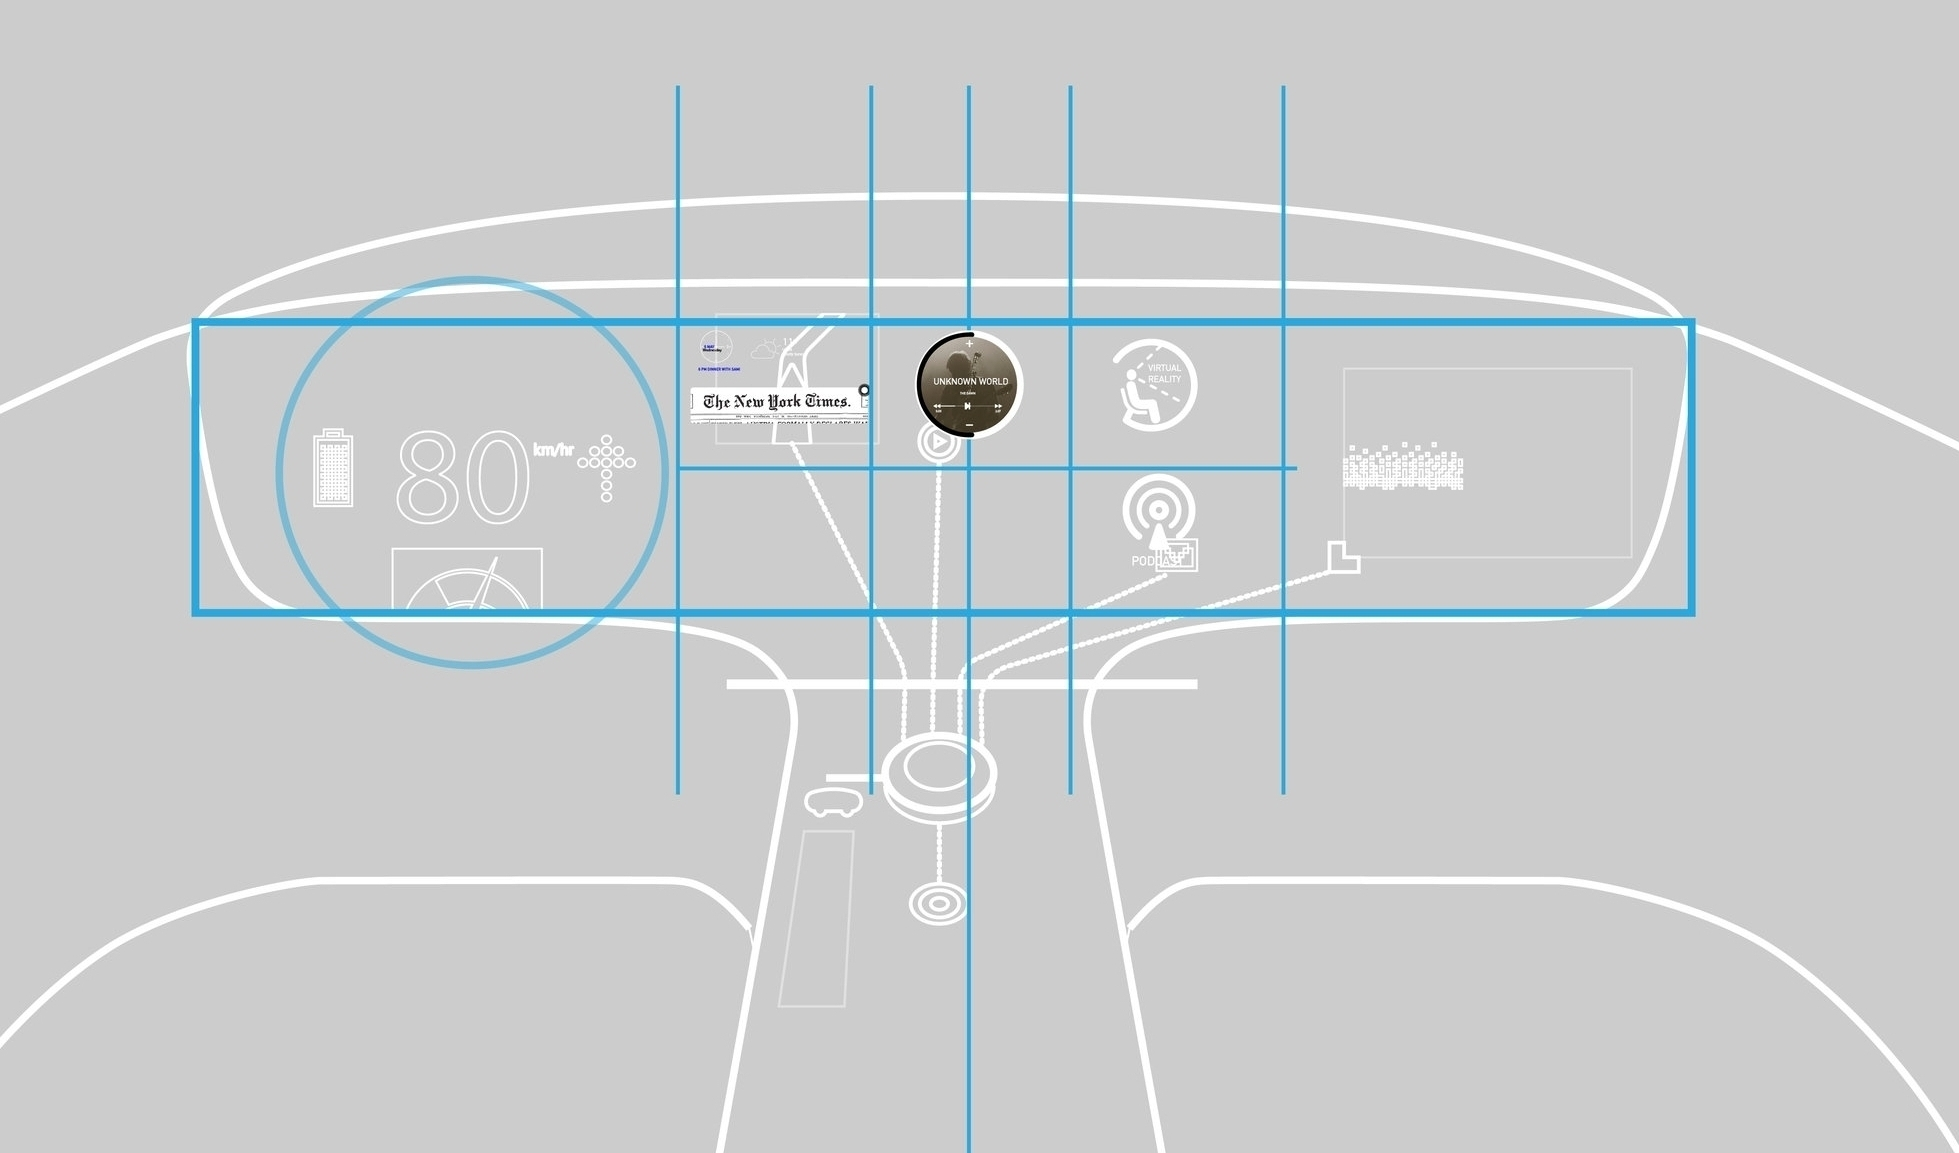 Initial wireframe  - skeleton created to arrange elements at the dashboard